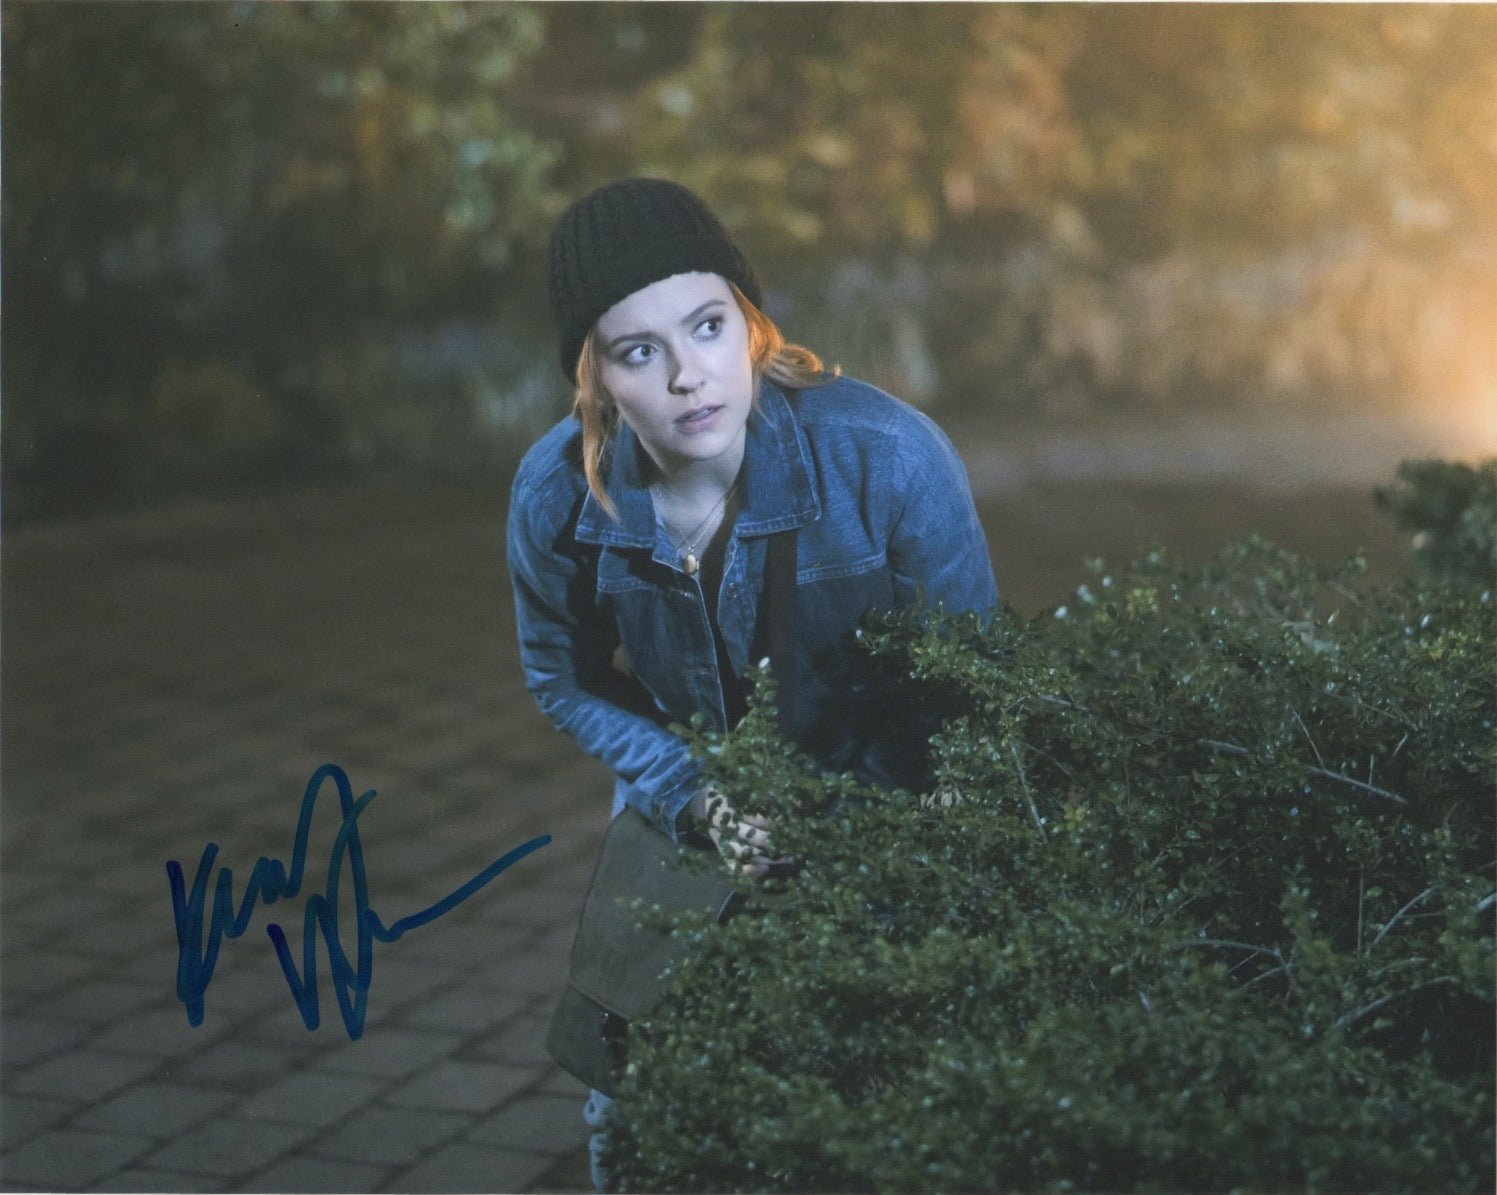 Kennedy McMann Nancy Drew Signed Autograph 8x10 Photo #23 - Outlaw Hobbies Authentic Autographs